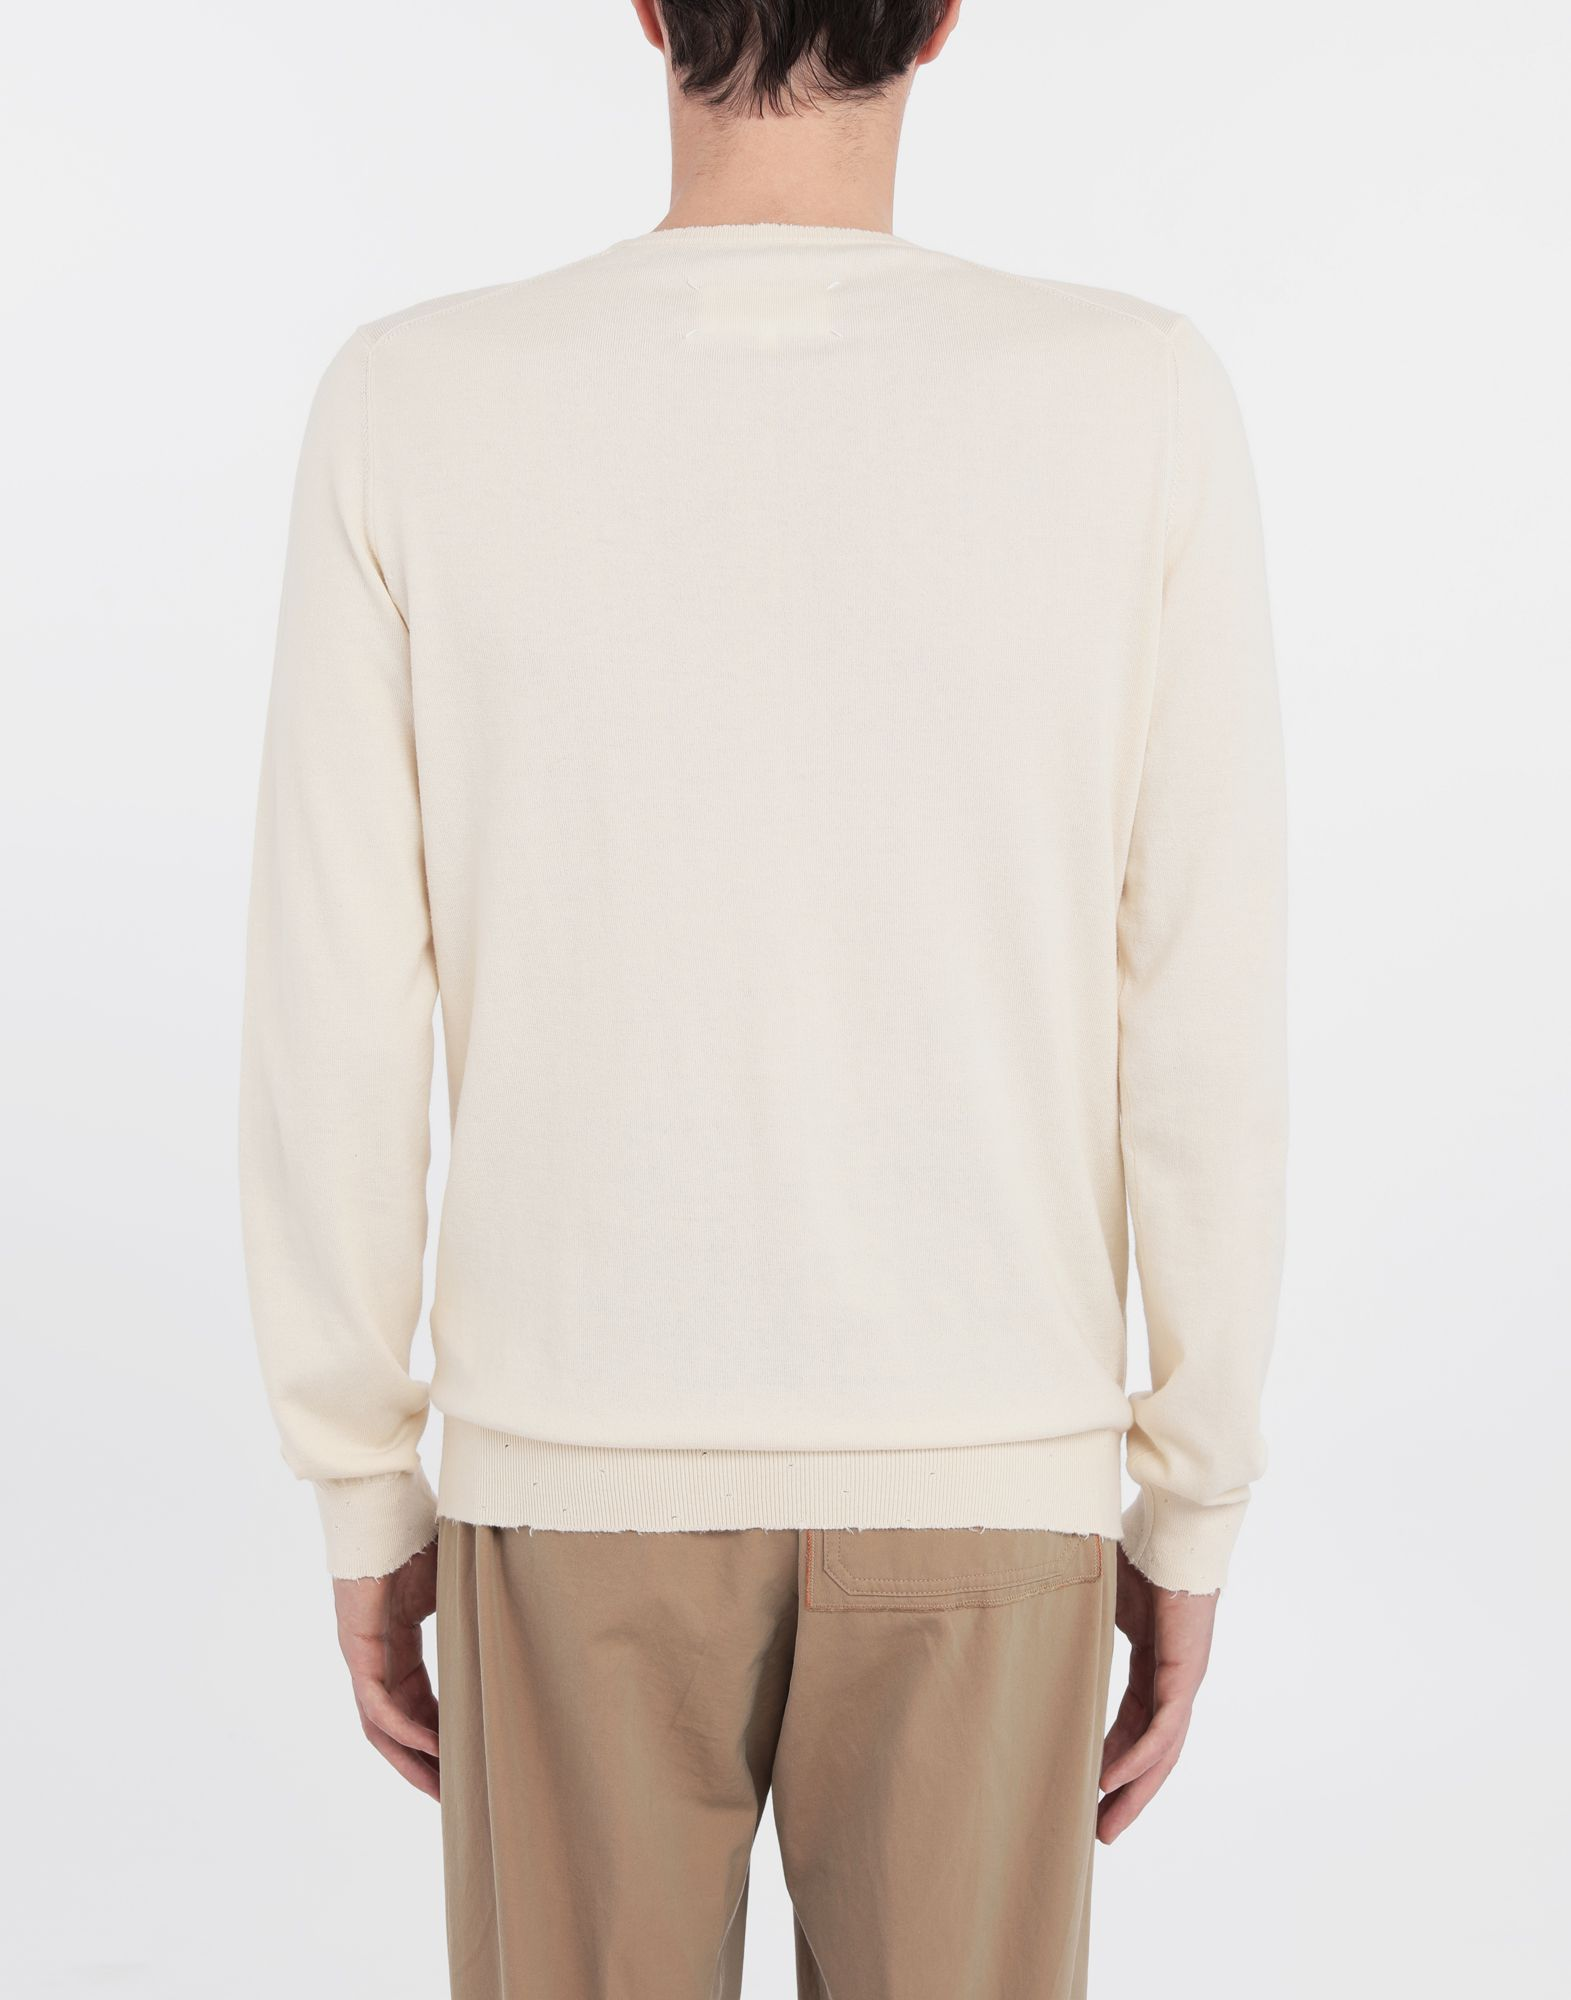 MAISON MARGIELA Destroyed knit pullover Crewneck sweater Man e